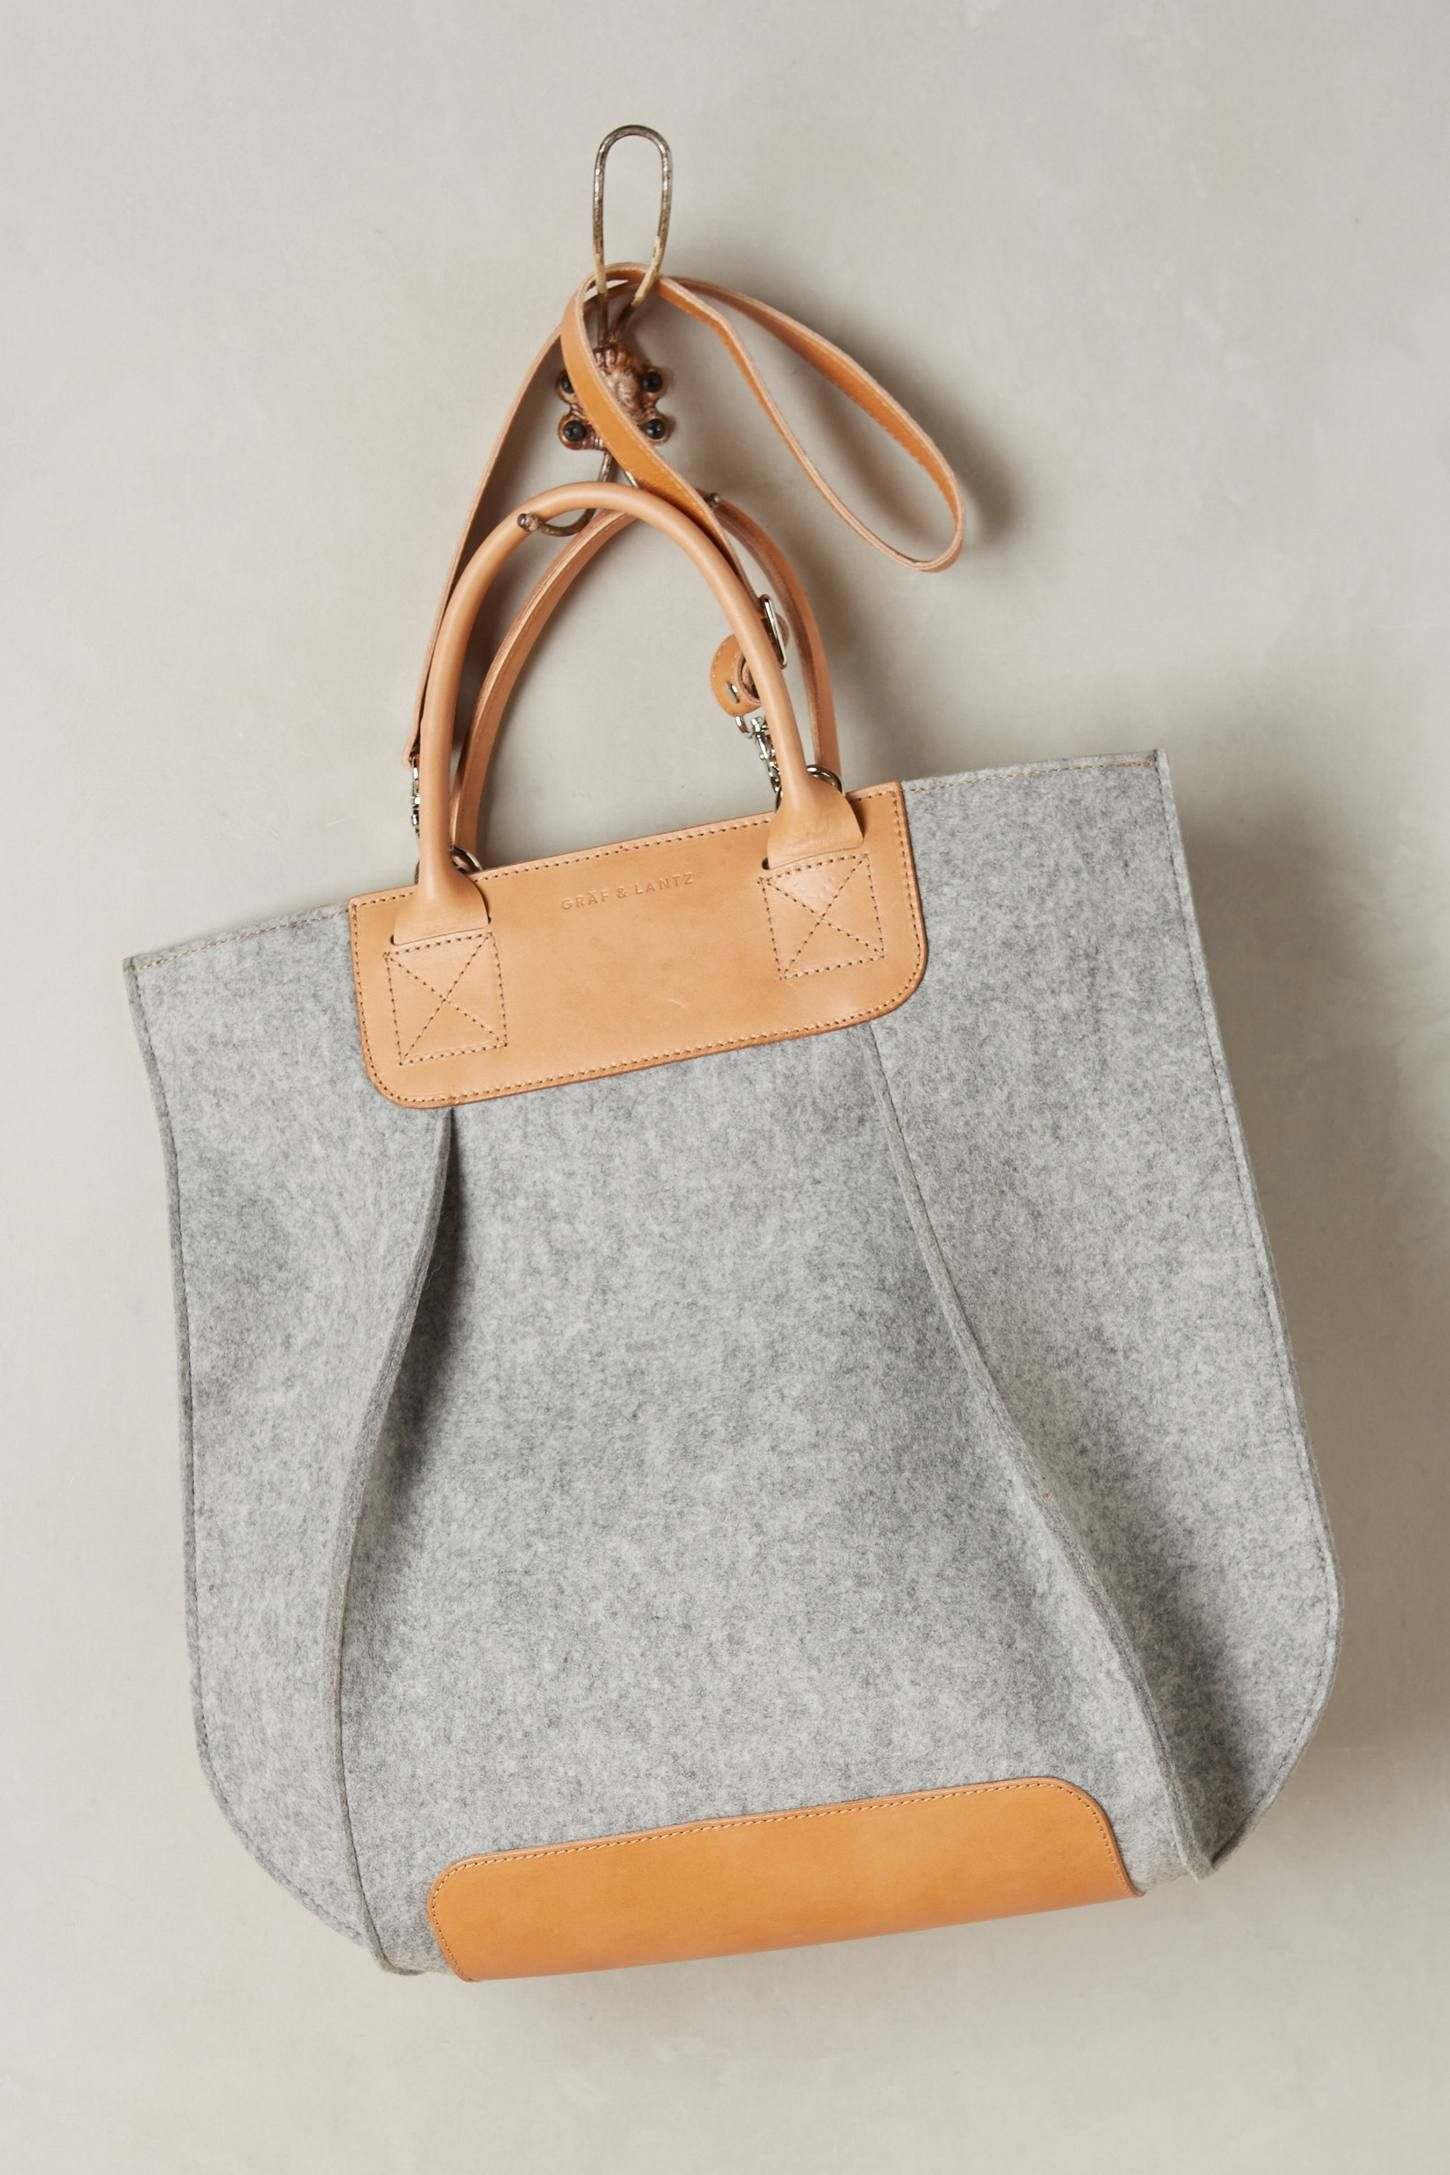 at anthropologie Frankie Pleated Tote